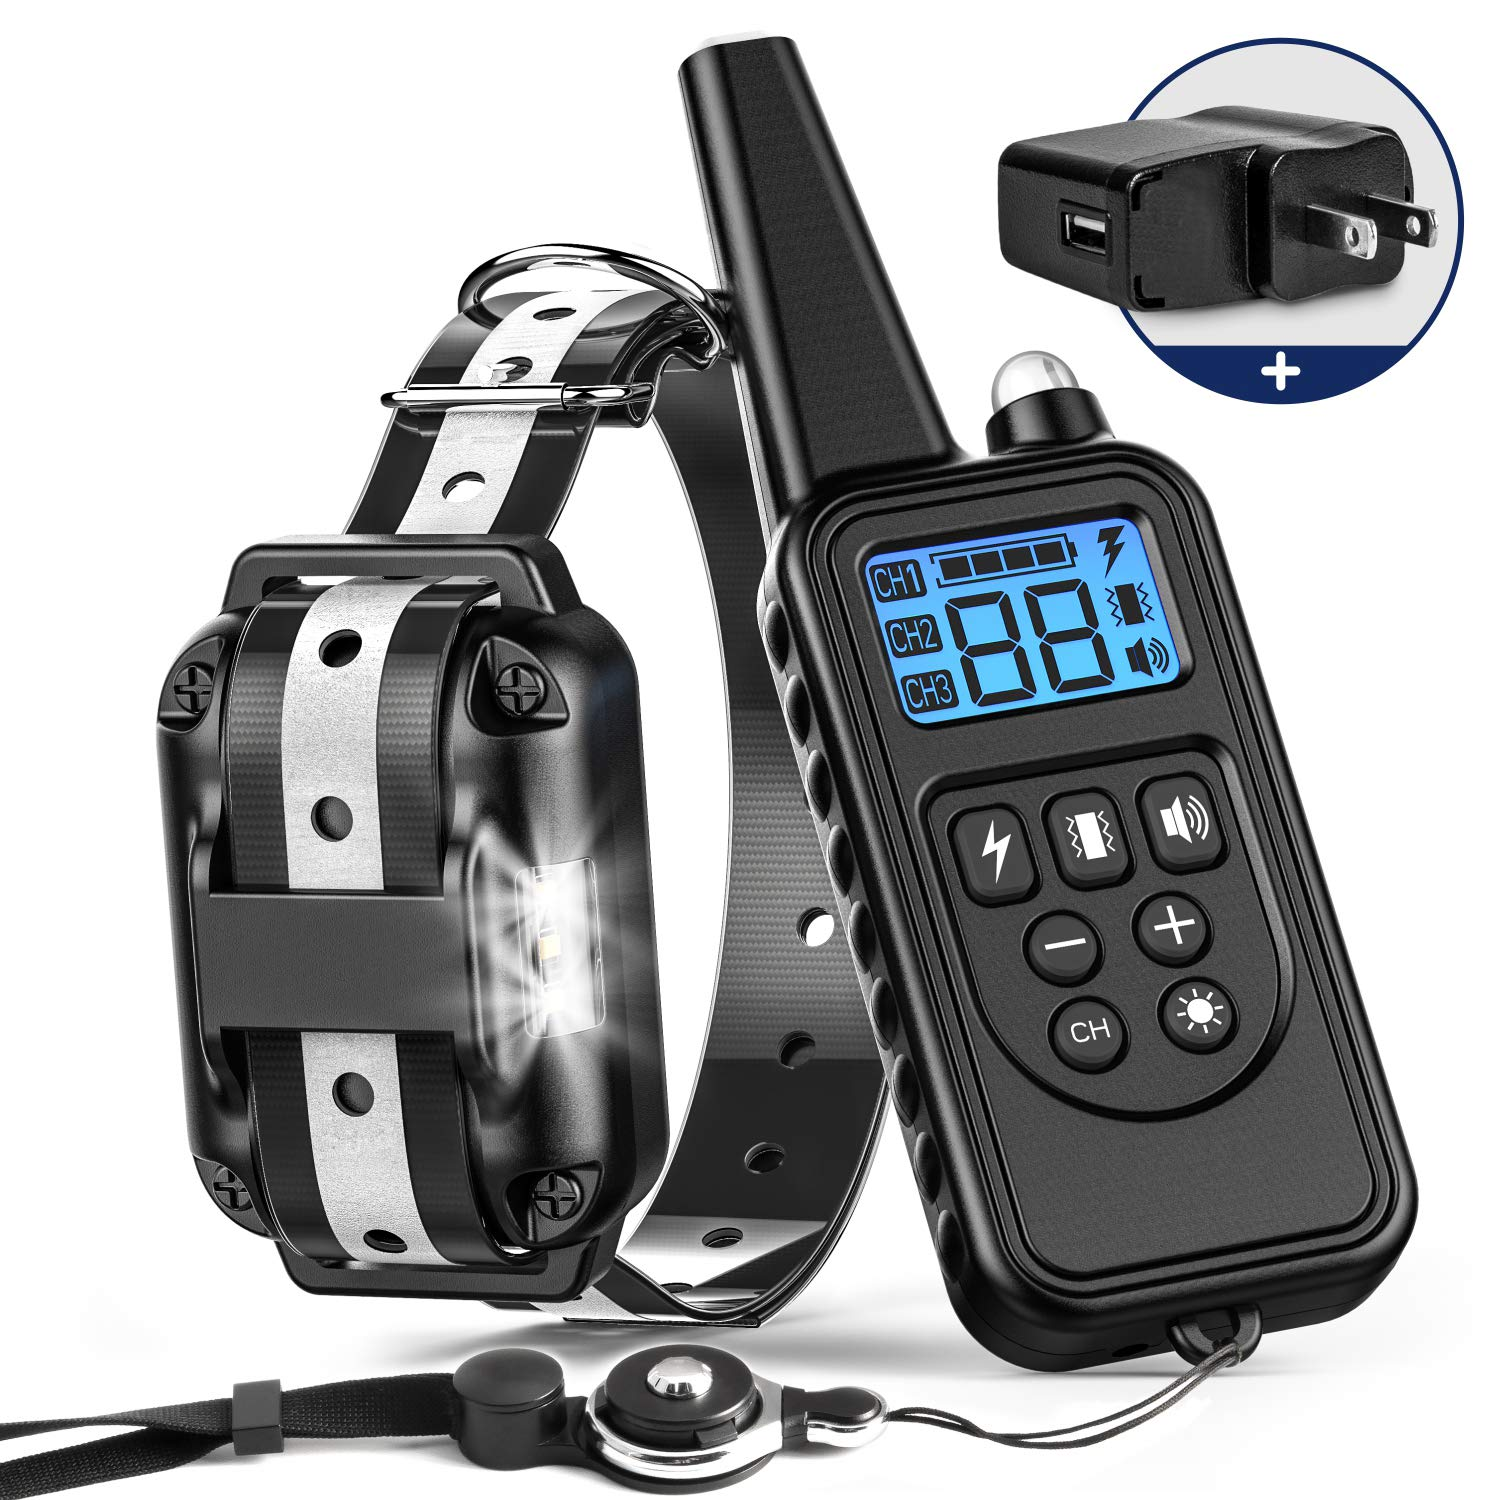 Training Collar T052 Dog Training Collar, BuddiPets 2018 Upgraded Reflect Light for Safety Waterproof Shock Collar for Dogs 2600ft Remote LED Light Tone Vibration Shock Dog Shock Collar for Medium Large Dog, Adapter Black